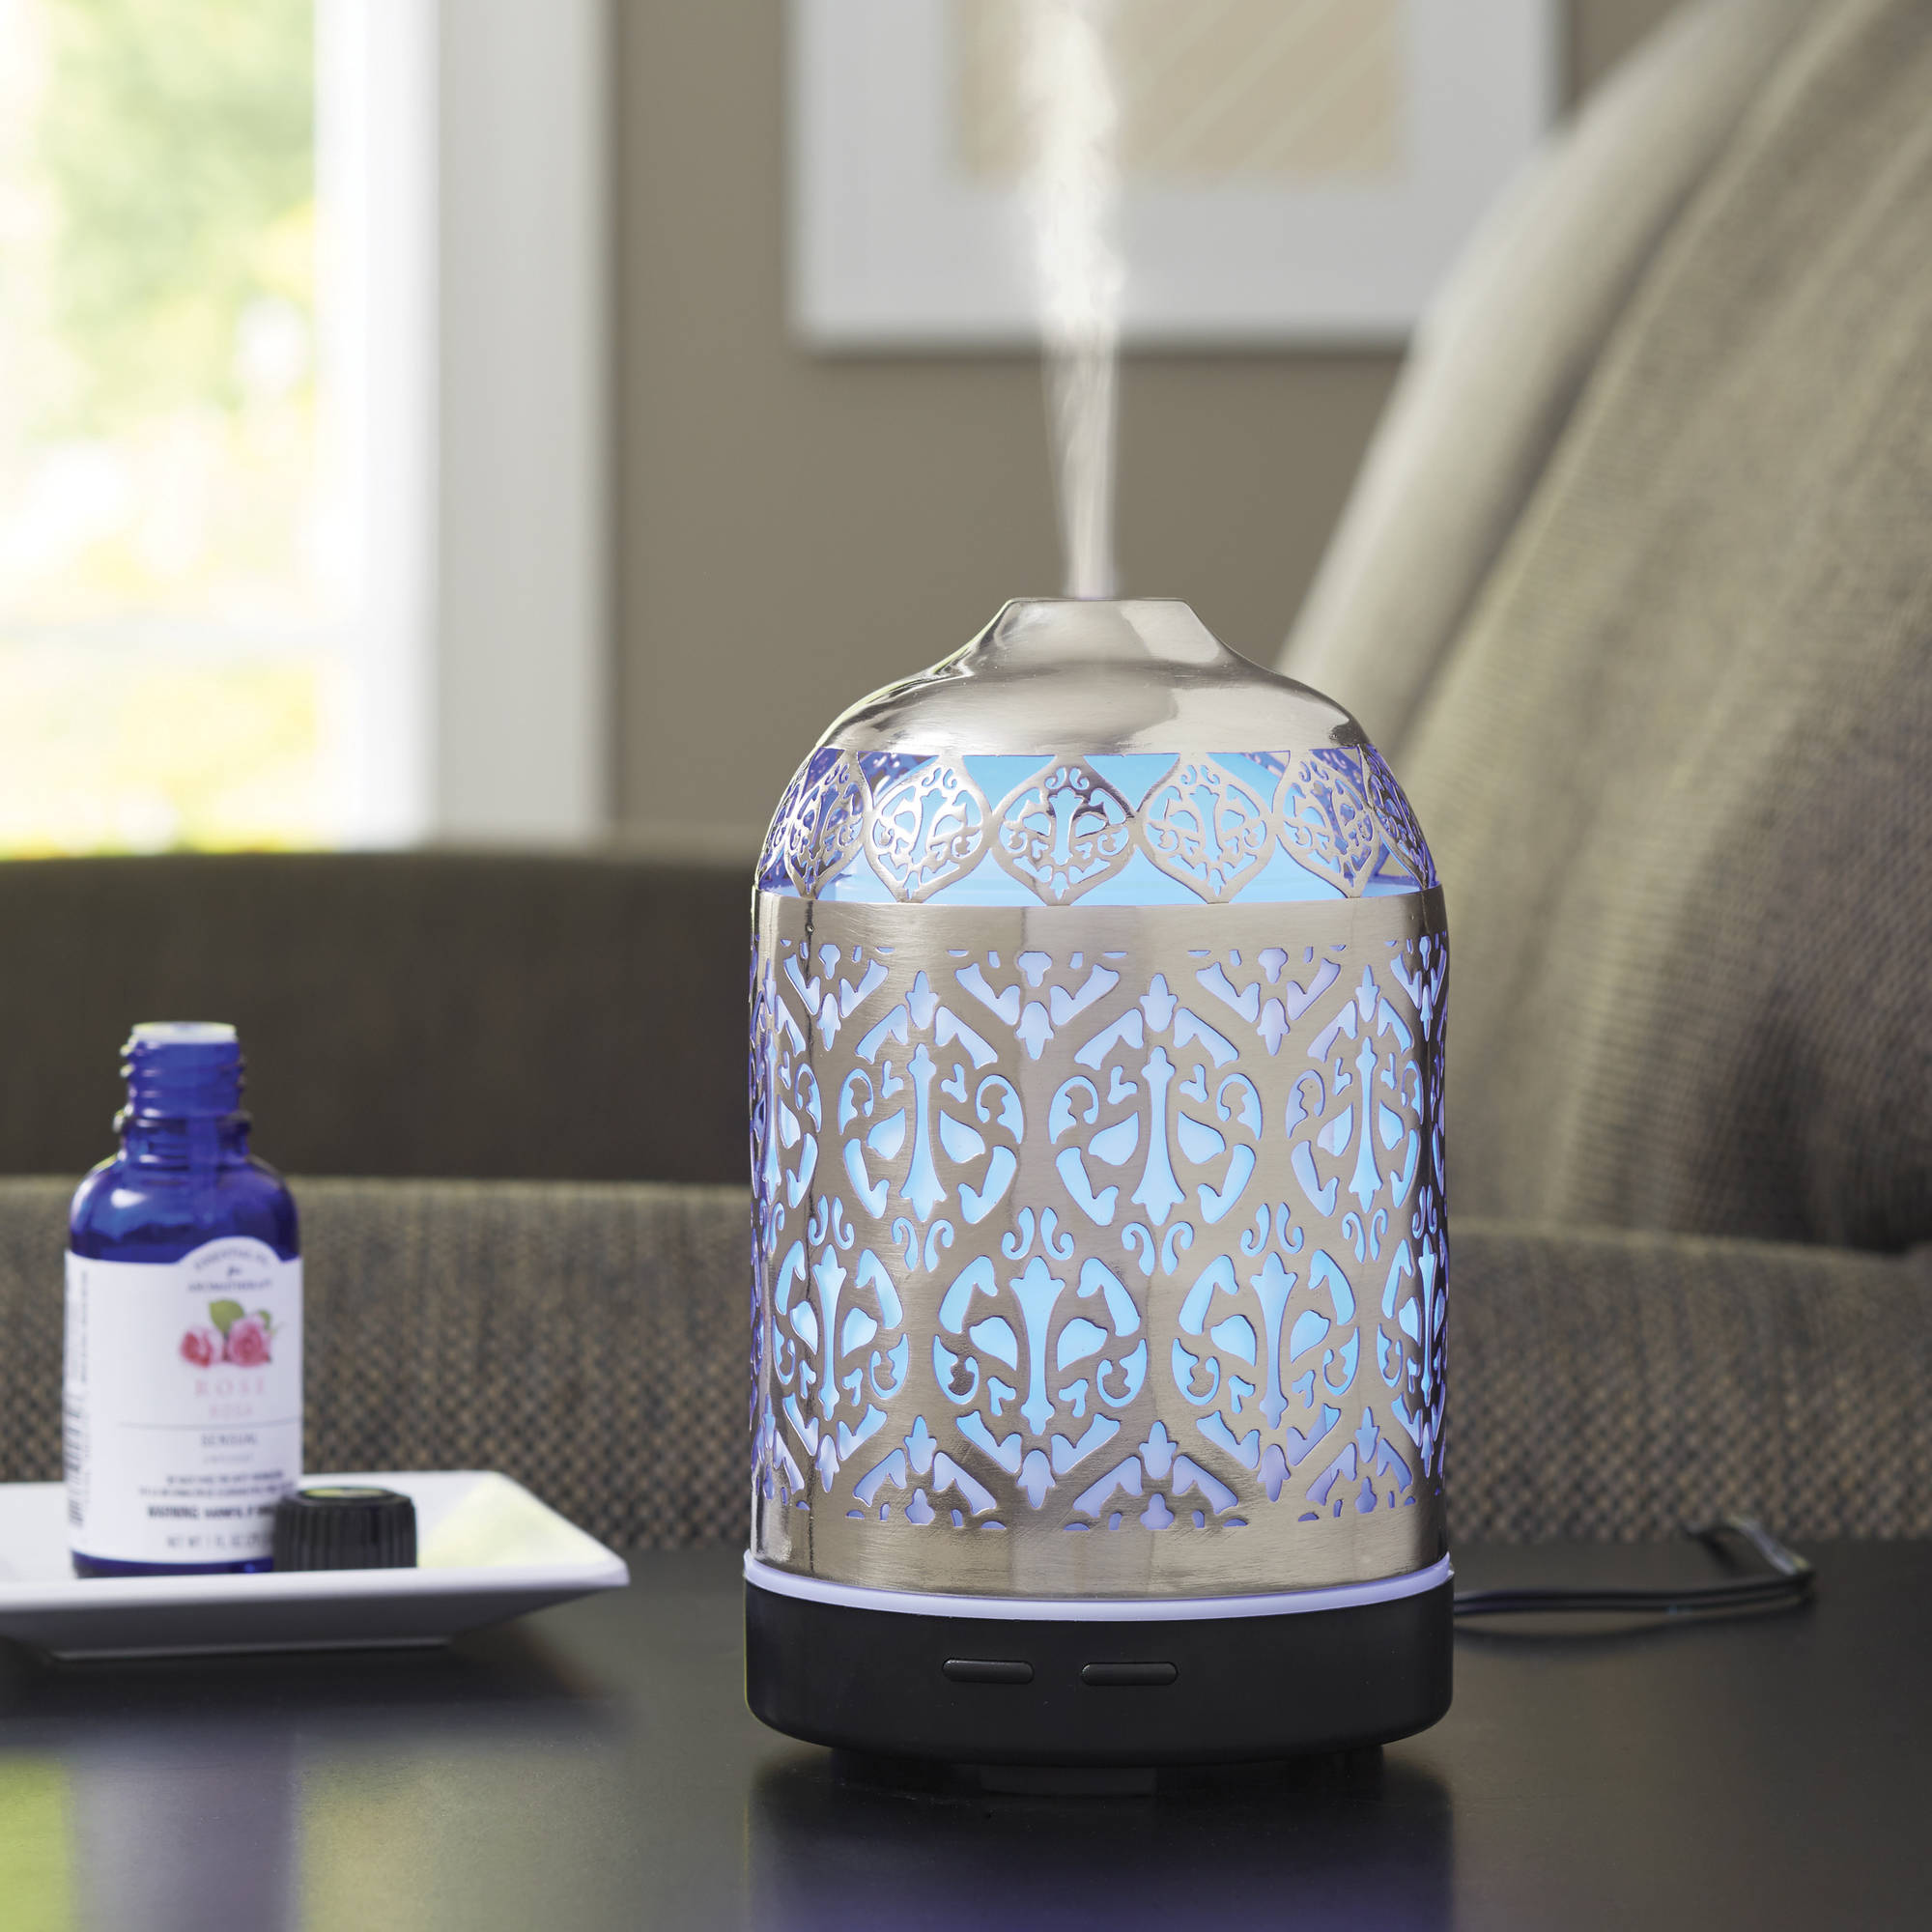 Essential Homes better homes and gardens 100 ml essential oil diffuser, delicate